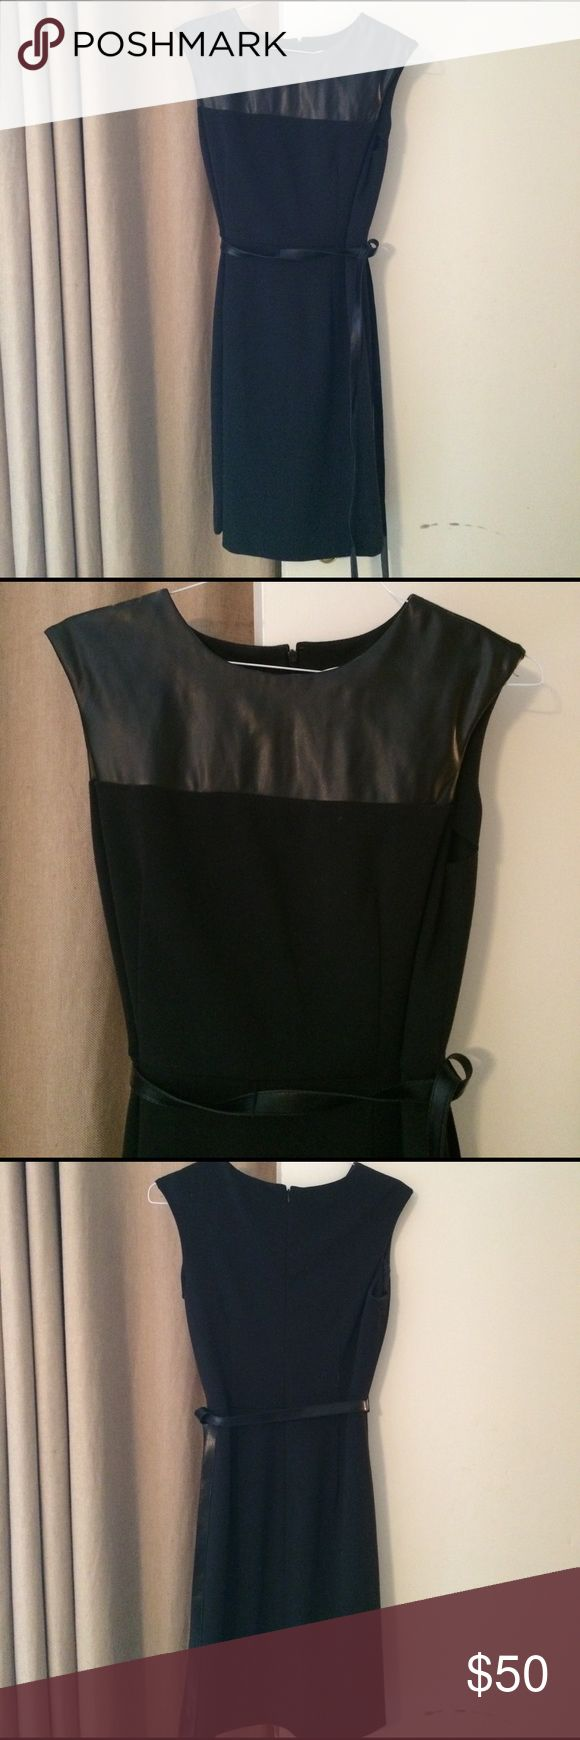 Black cocktail dress Calvin Klein black cocktail dress...faux leather top with faux leather belt that can be tied around waist. Worn once!! PRECIOUS!! Calvin Klein Dresses